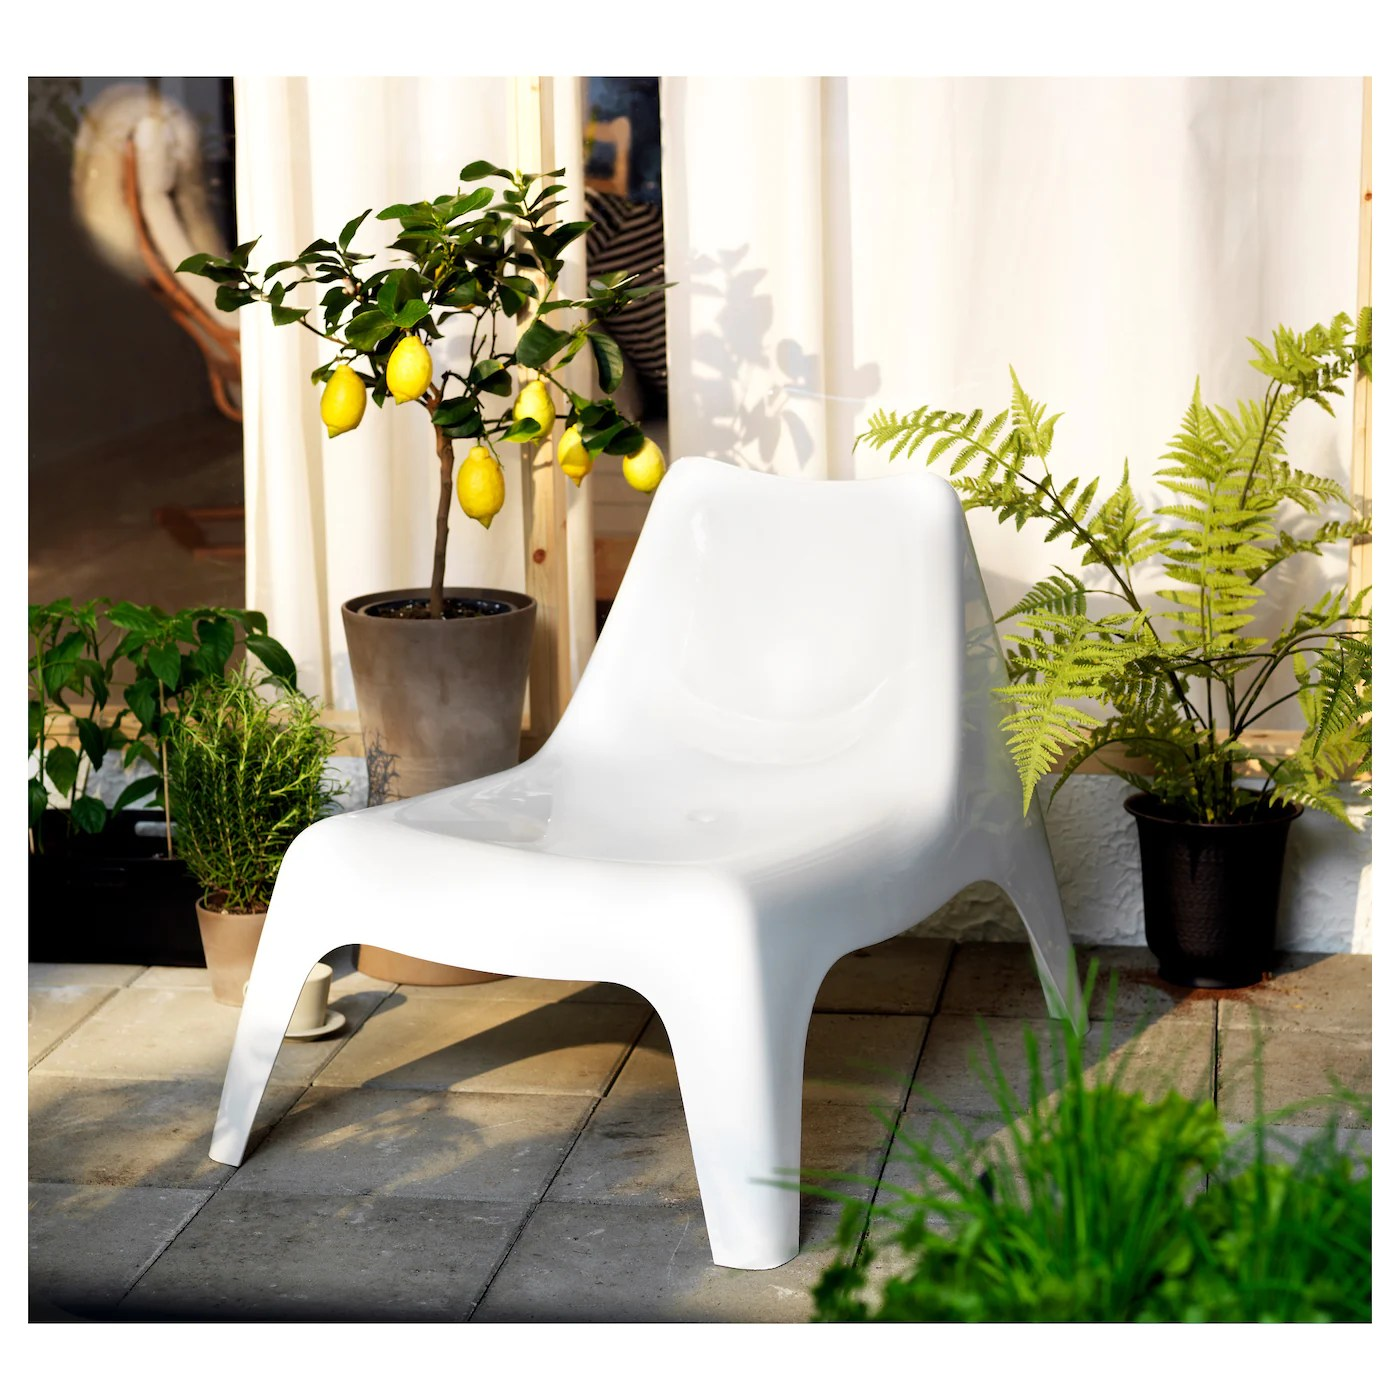 ikea ps chair outdoor - white